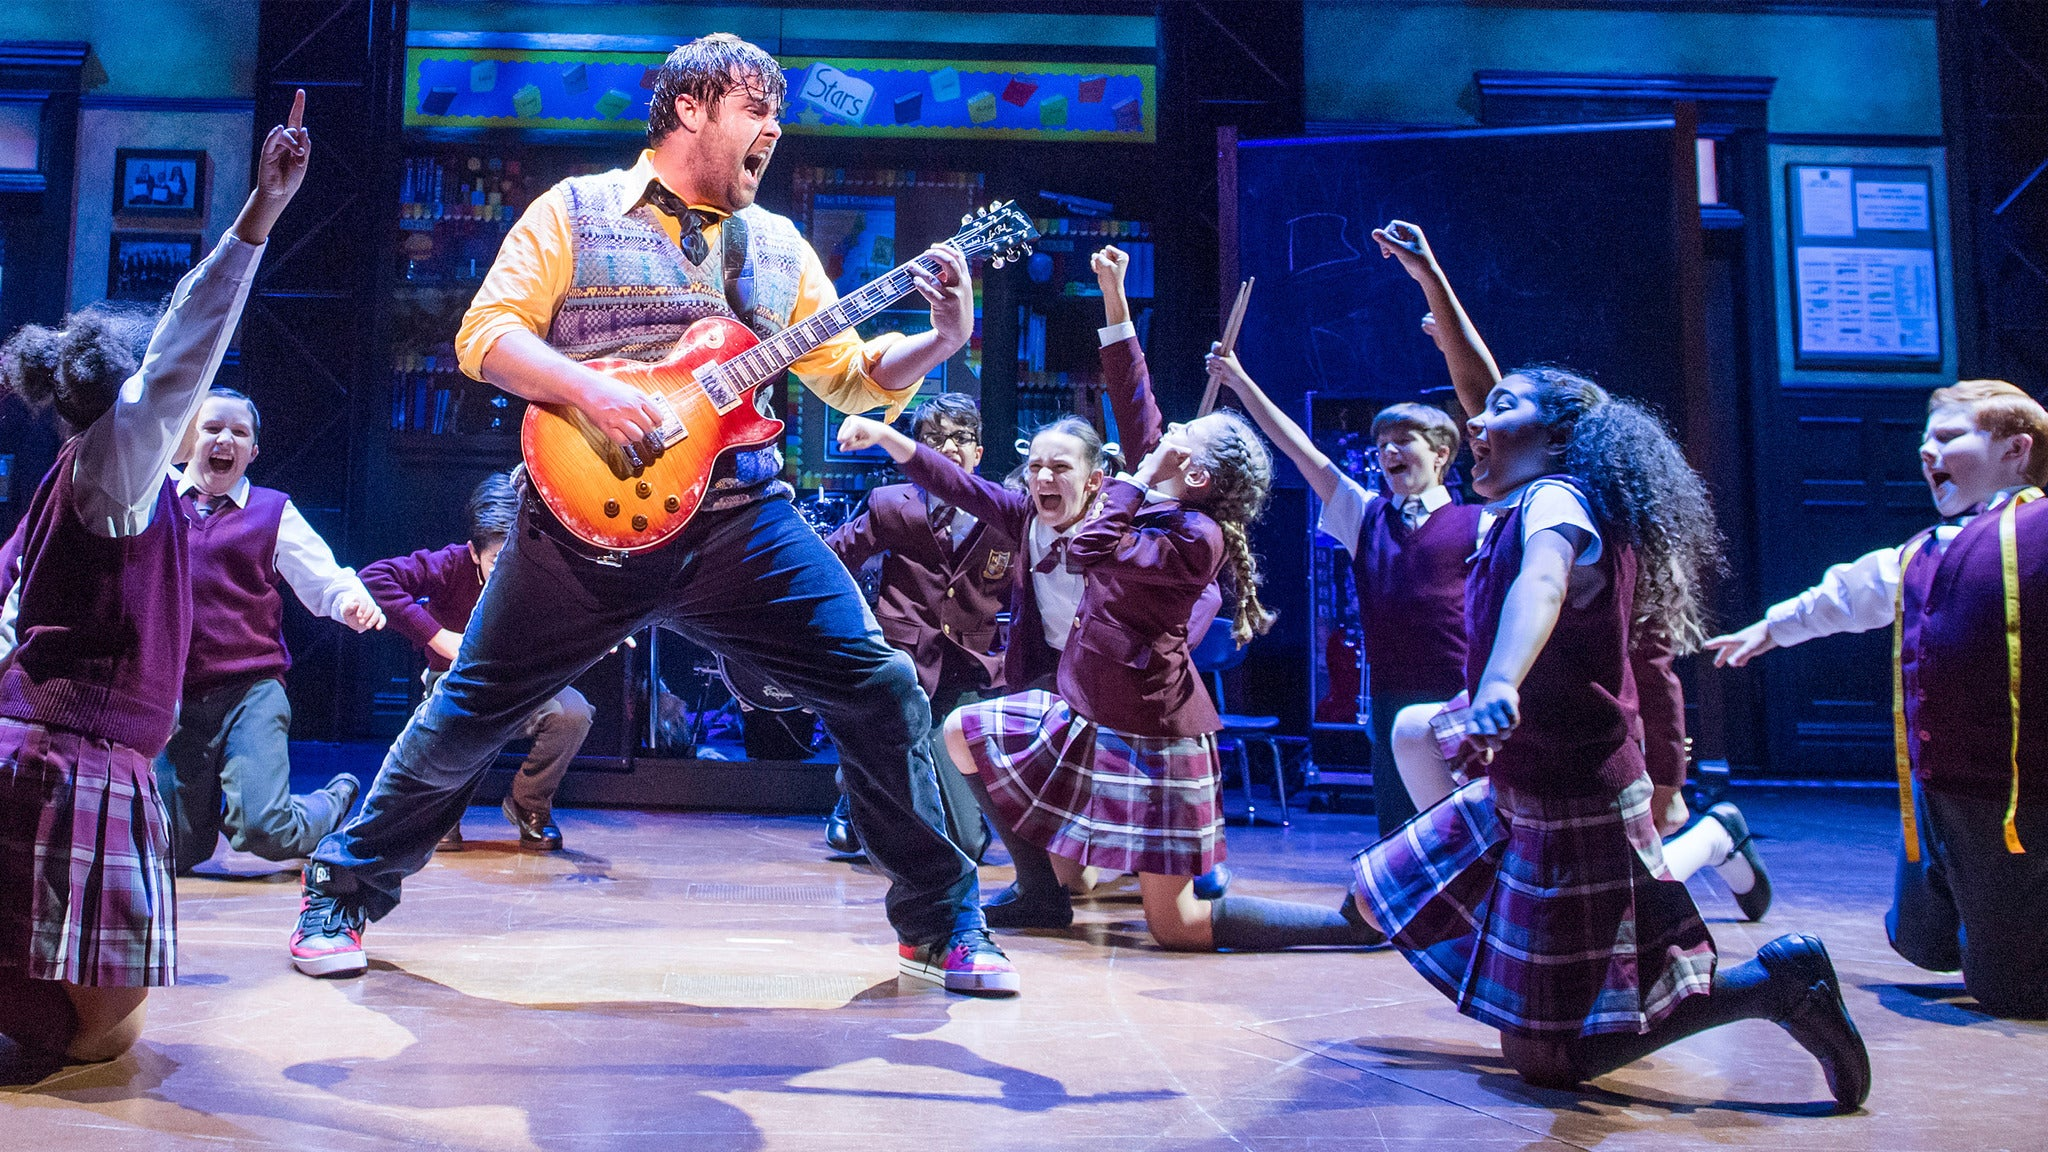 School of Rock - The Musical (Chicago) at Cadillac Palace